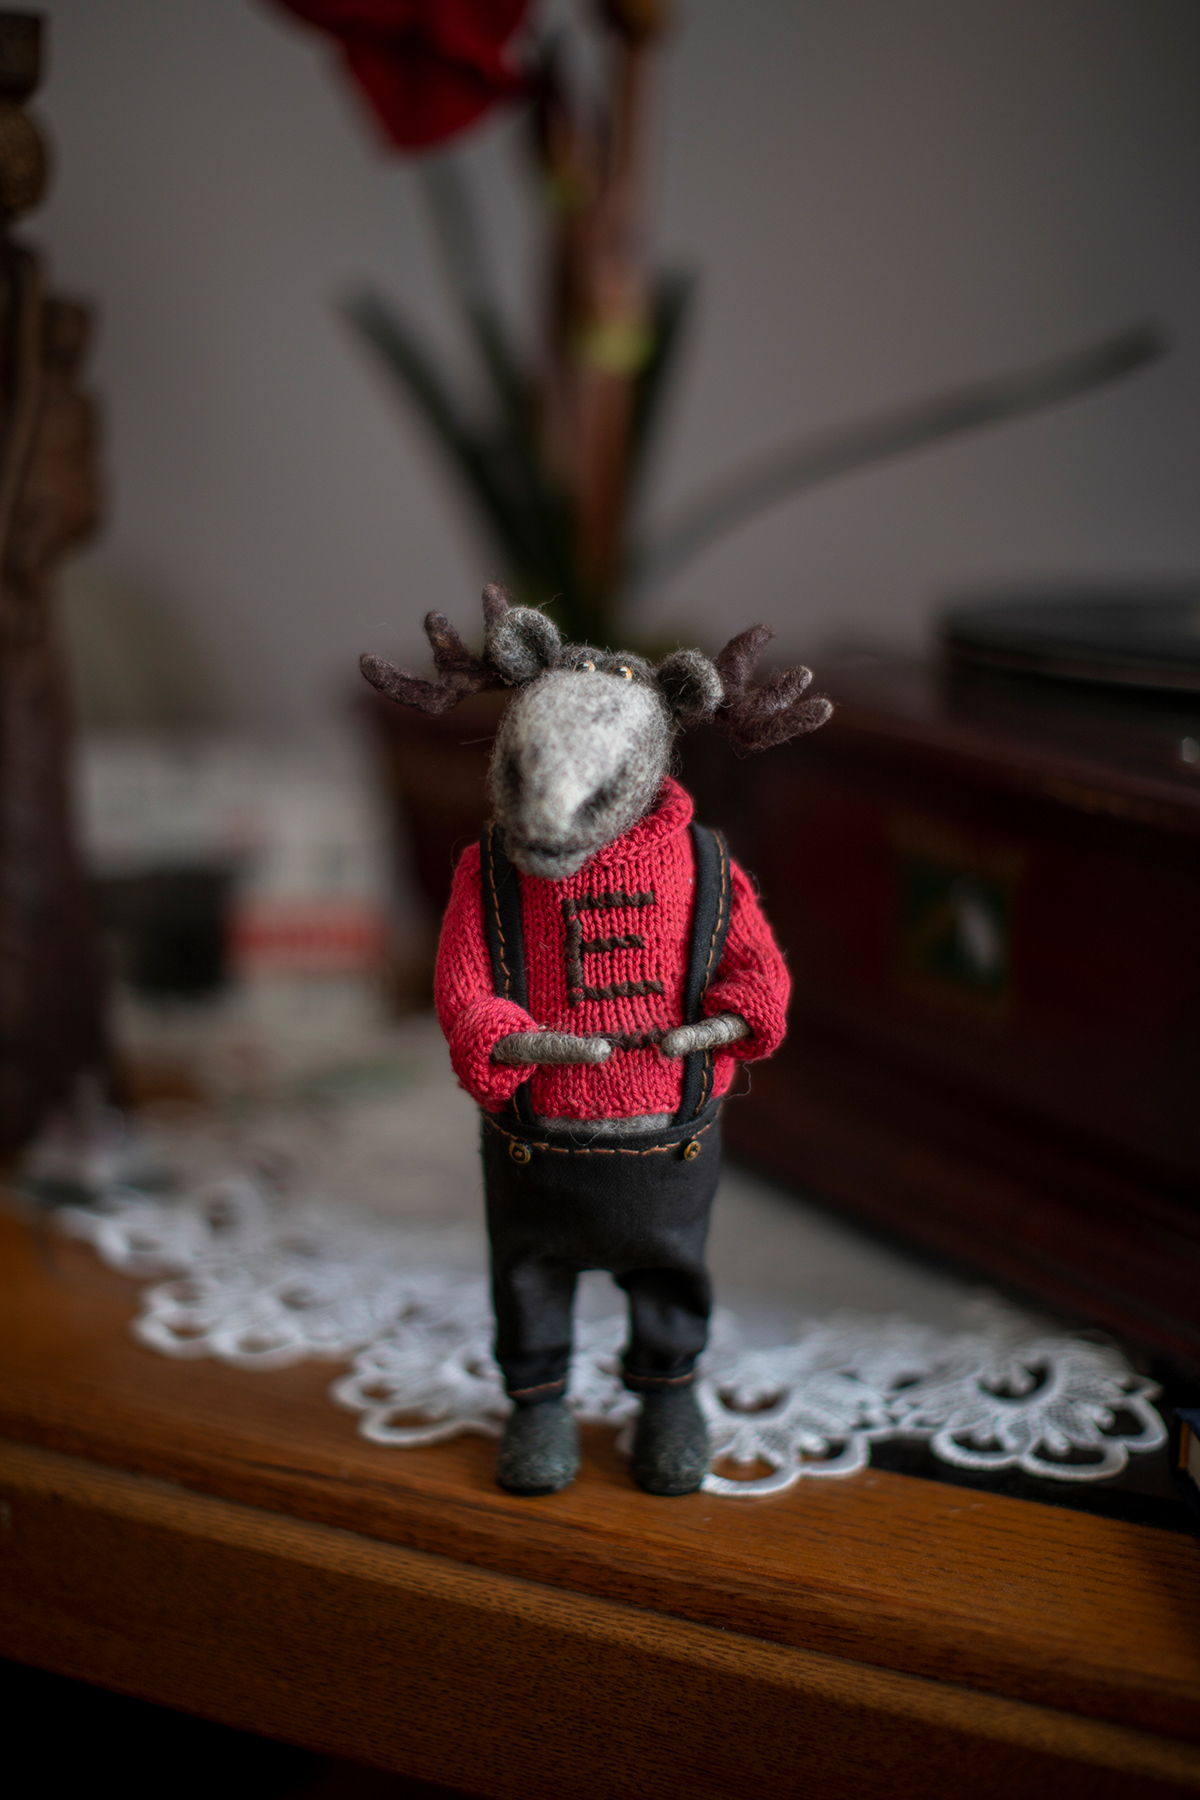 """A toy moose made of wool, wearing a knitted sweater with an embroidered """"E"""""""